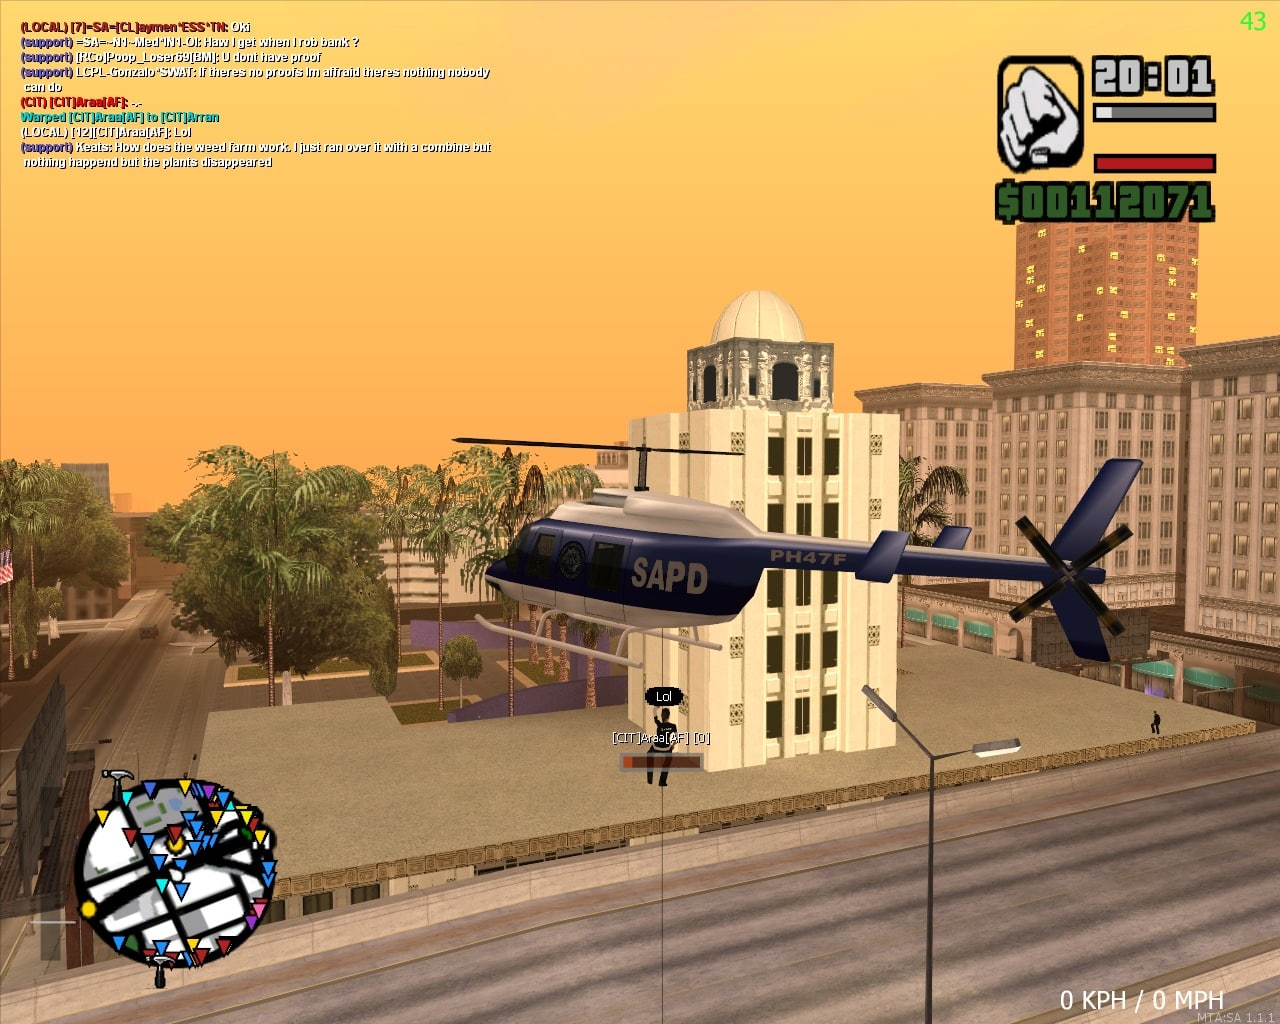 Multi Theft Auto: San Andreas